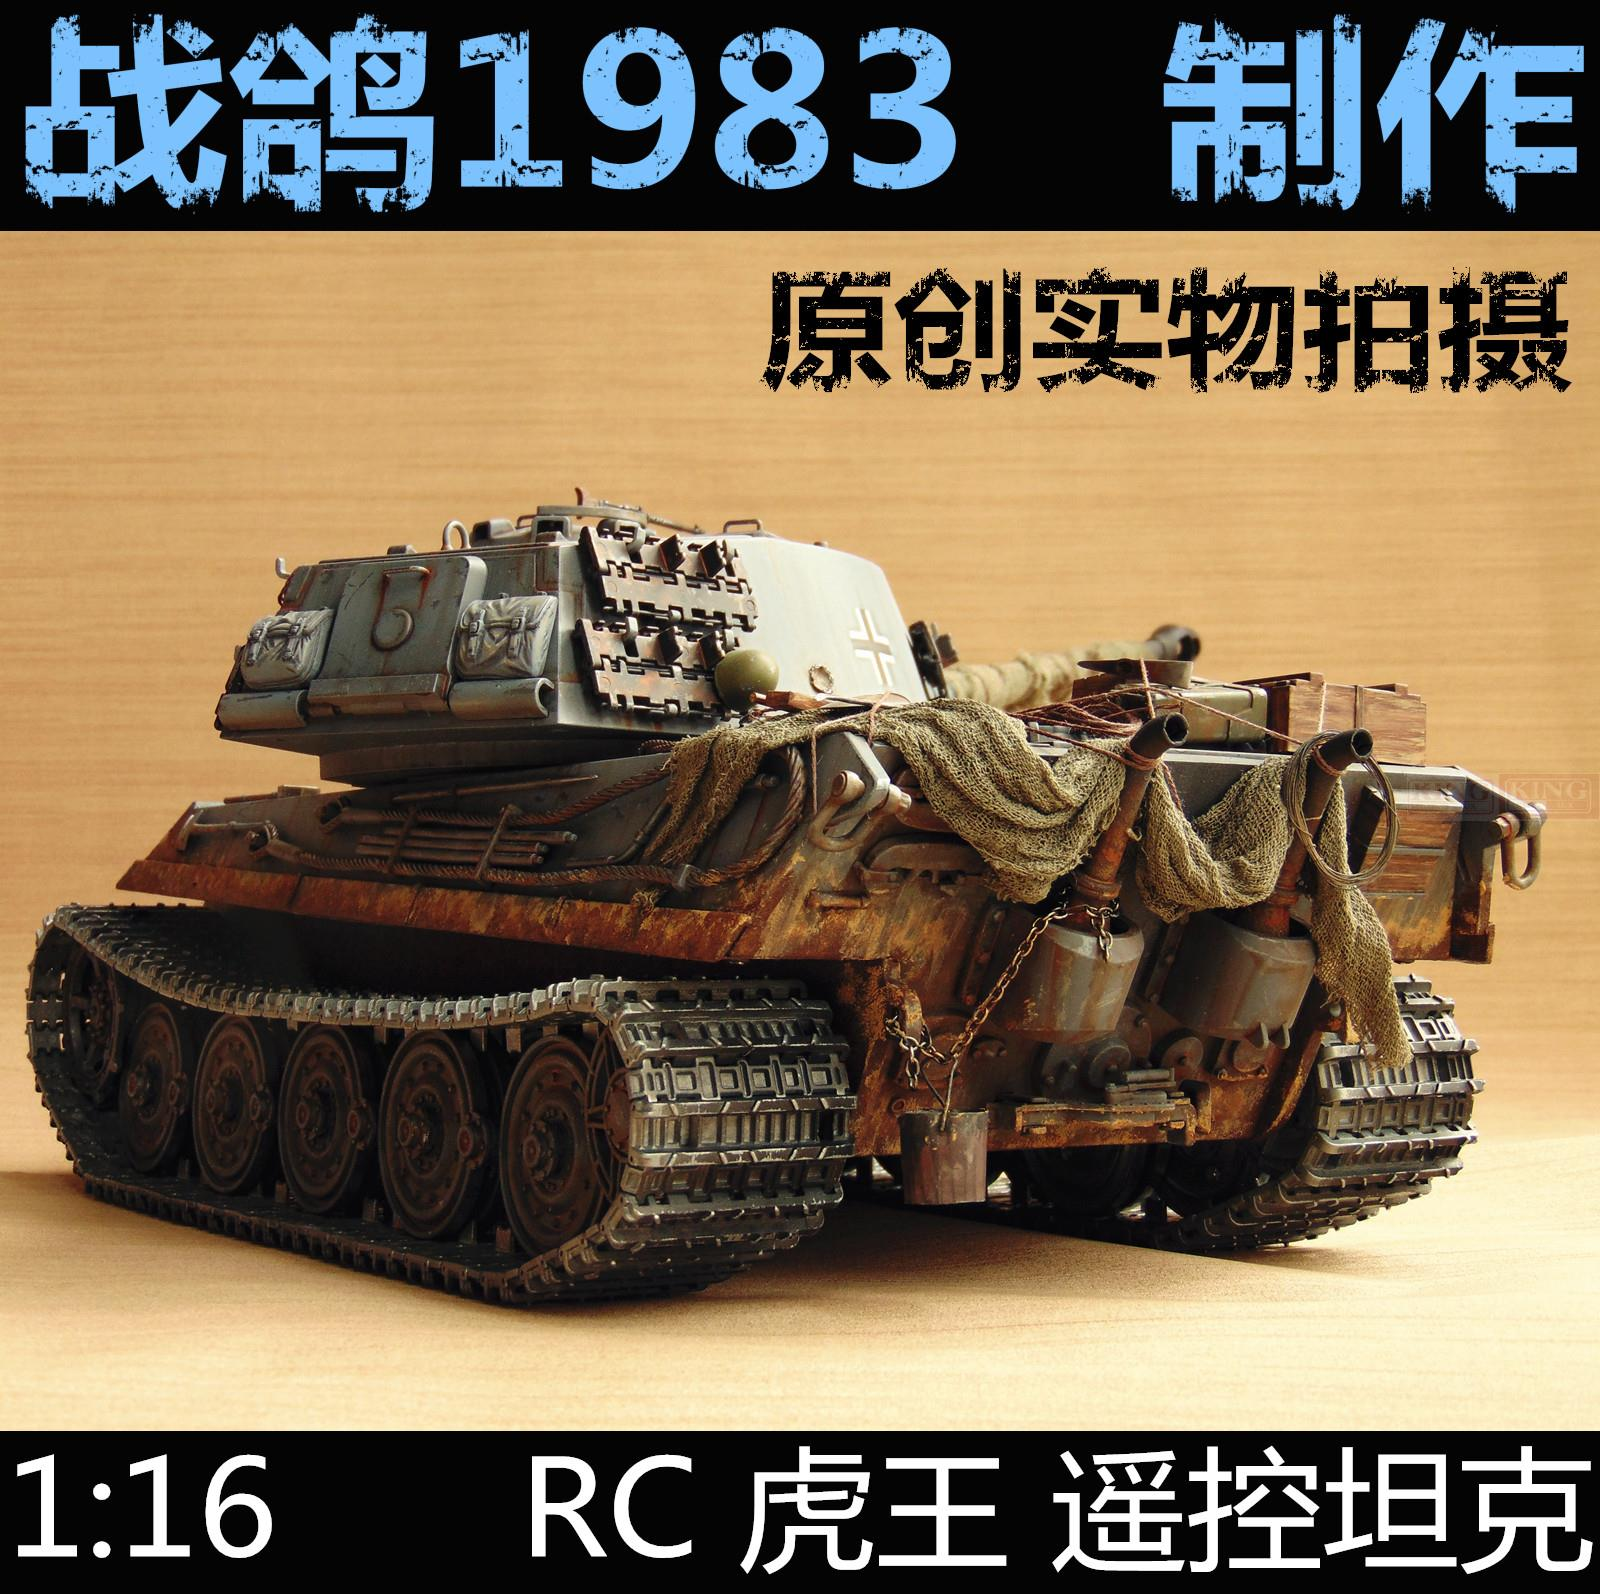 App Fpv Wifi Controlled Rc Tank Cloud Rover Remote Control Robot 216 Wiring Diagram Knl Hobby 116 King Tiger Model Oem Heavy Coating Of